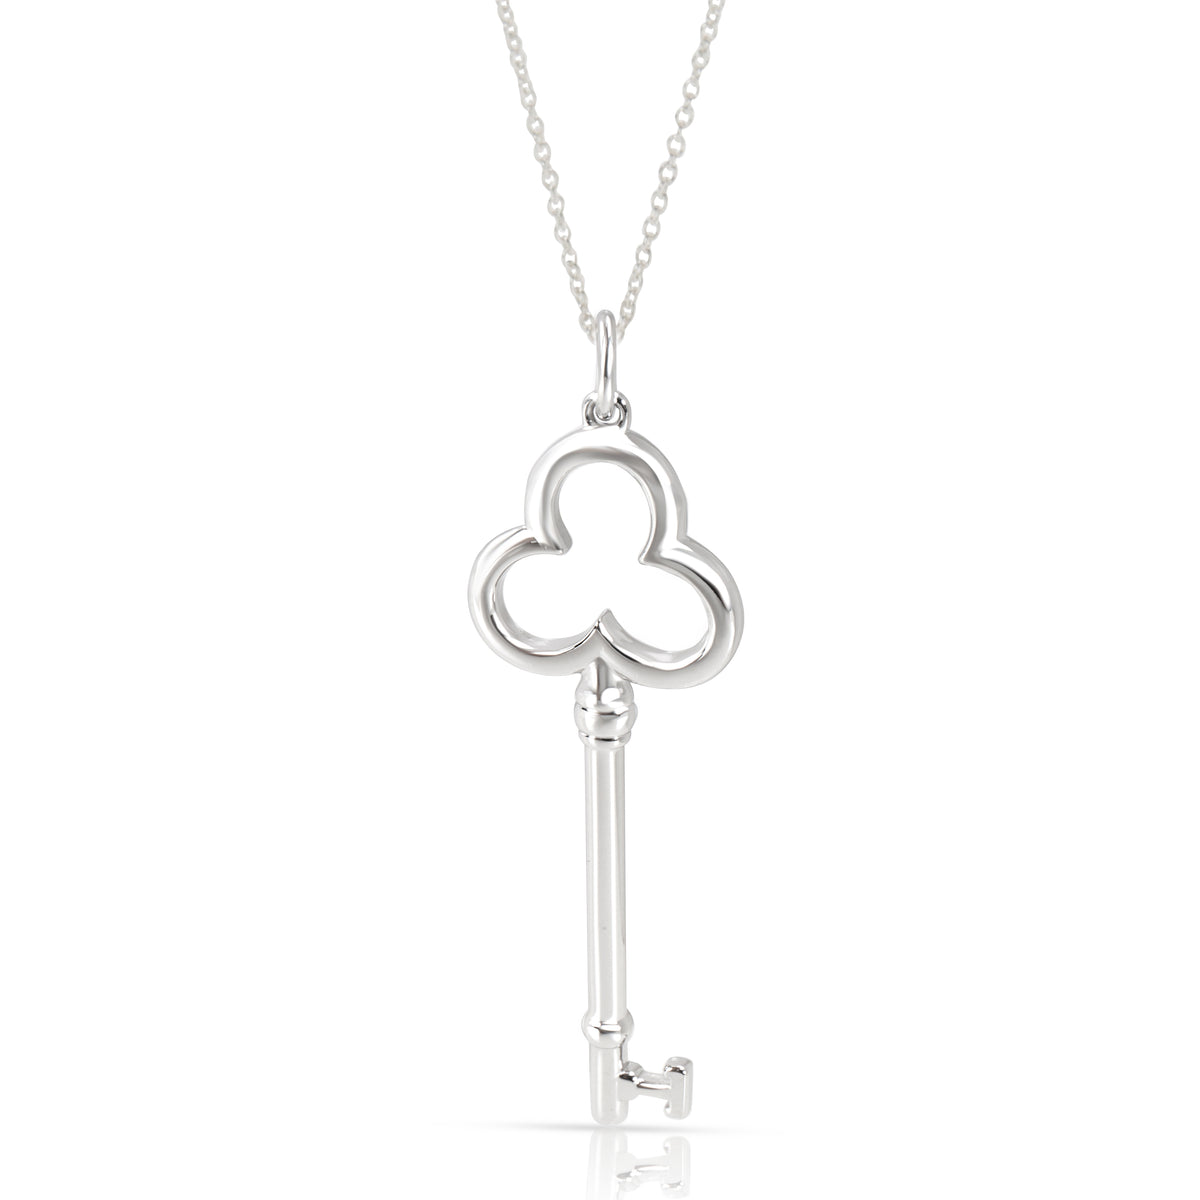 Tiffany & Co. Key Pendant in Sterling Silver